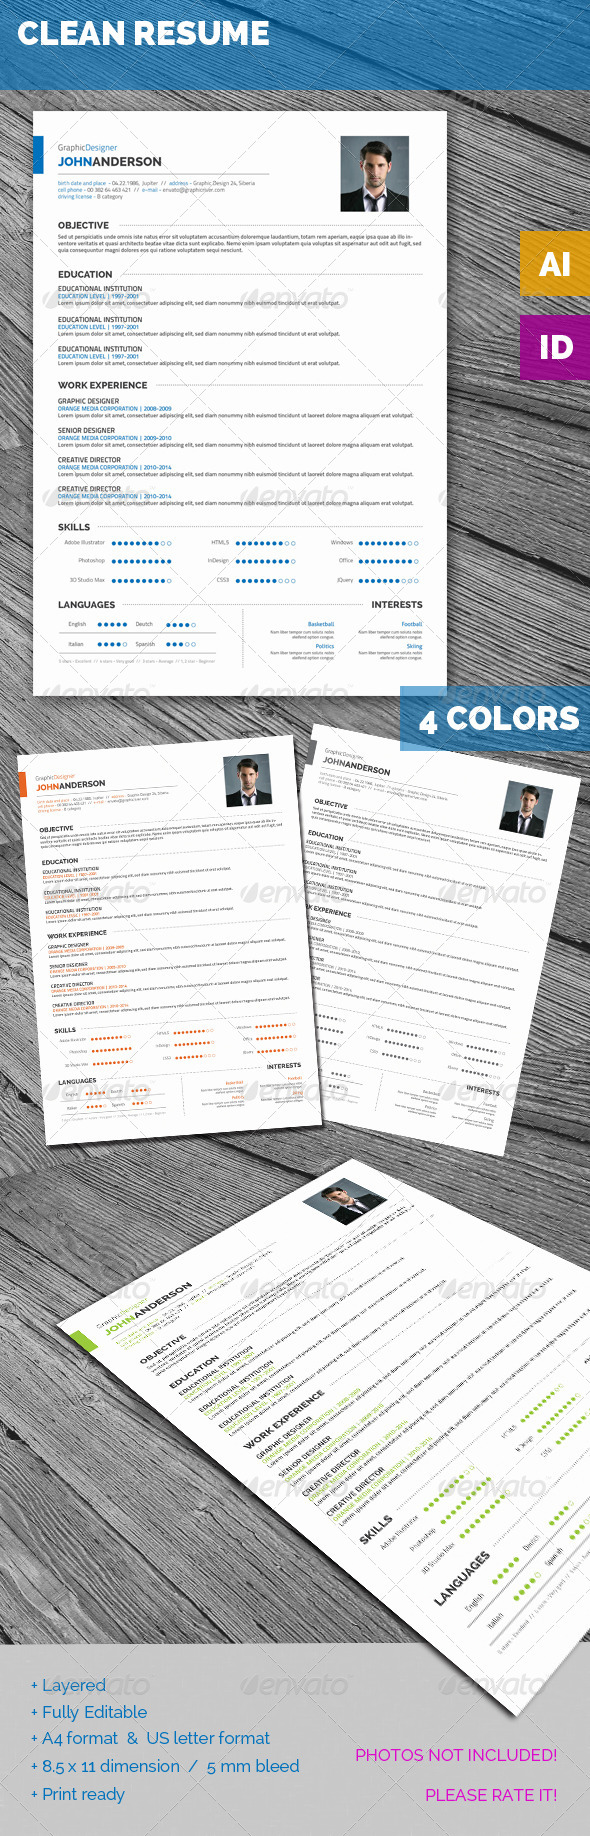 GraphicRiver Clean Resume 6872643